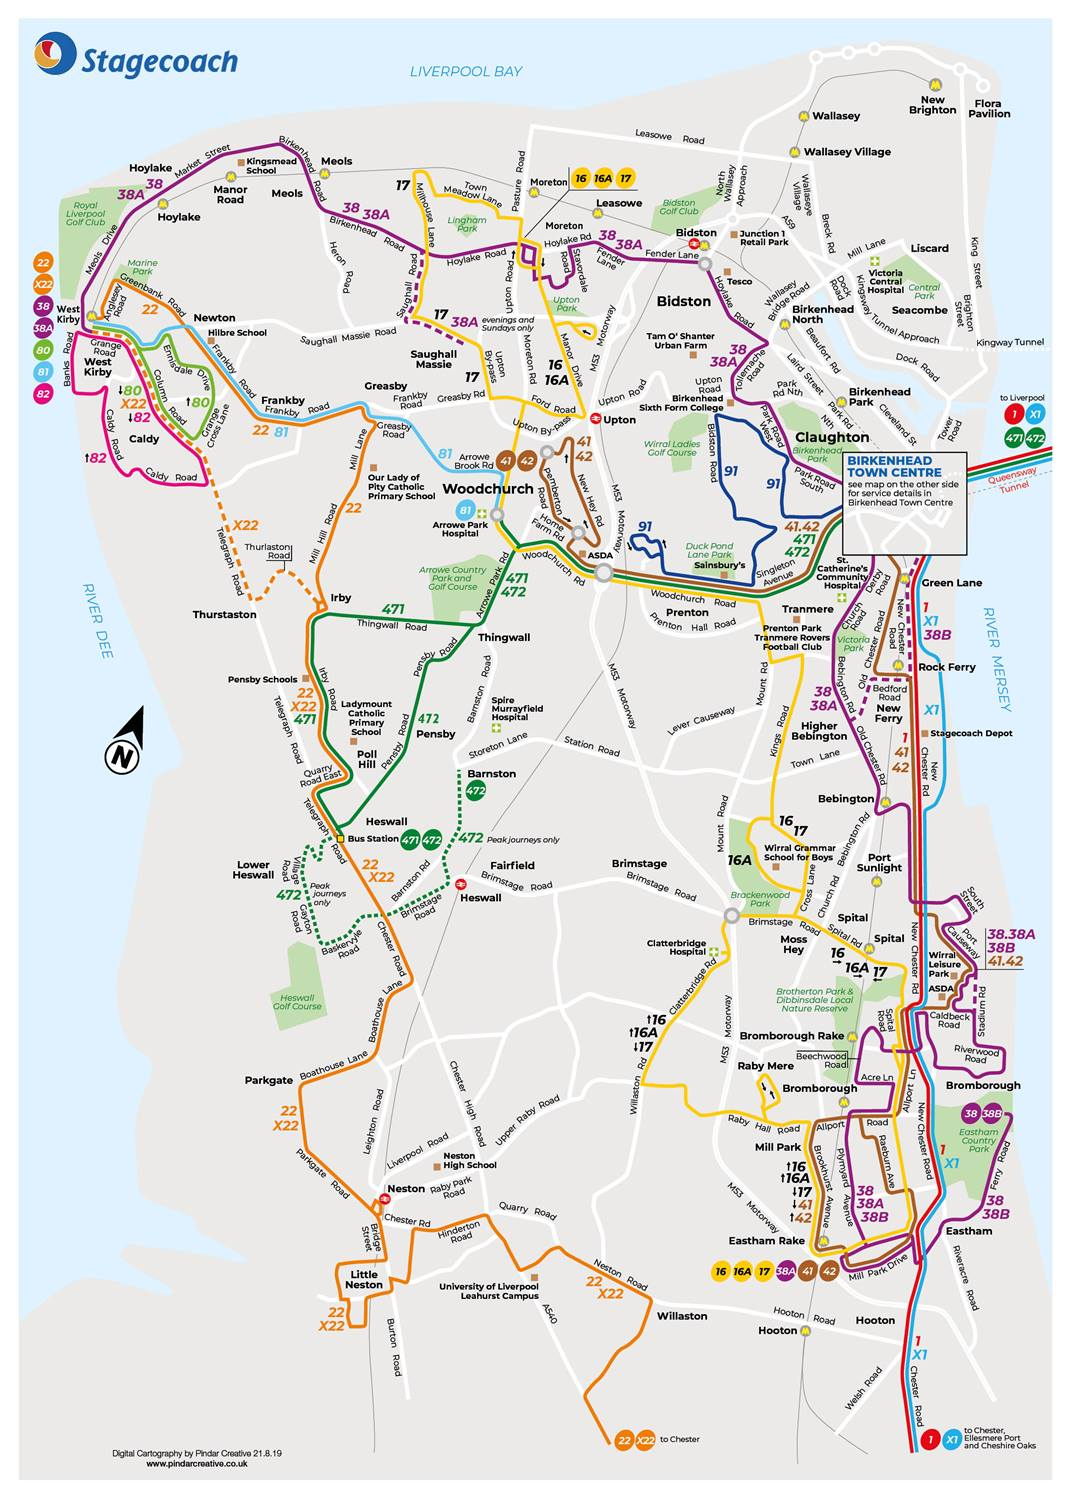 Wirral Network | Buses in Wirral | Stagecoach